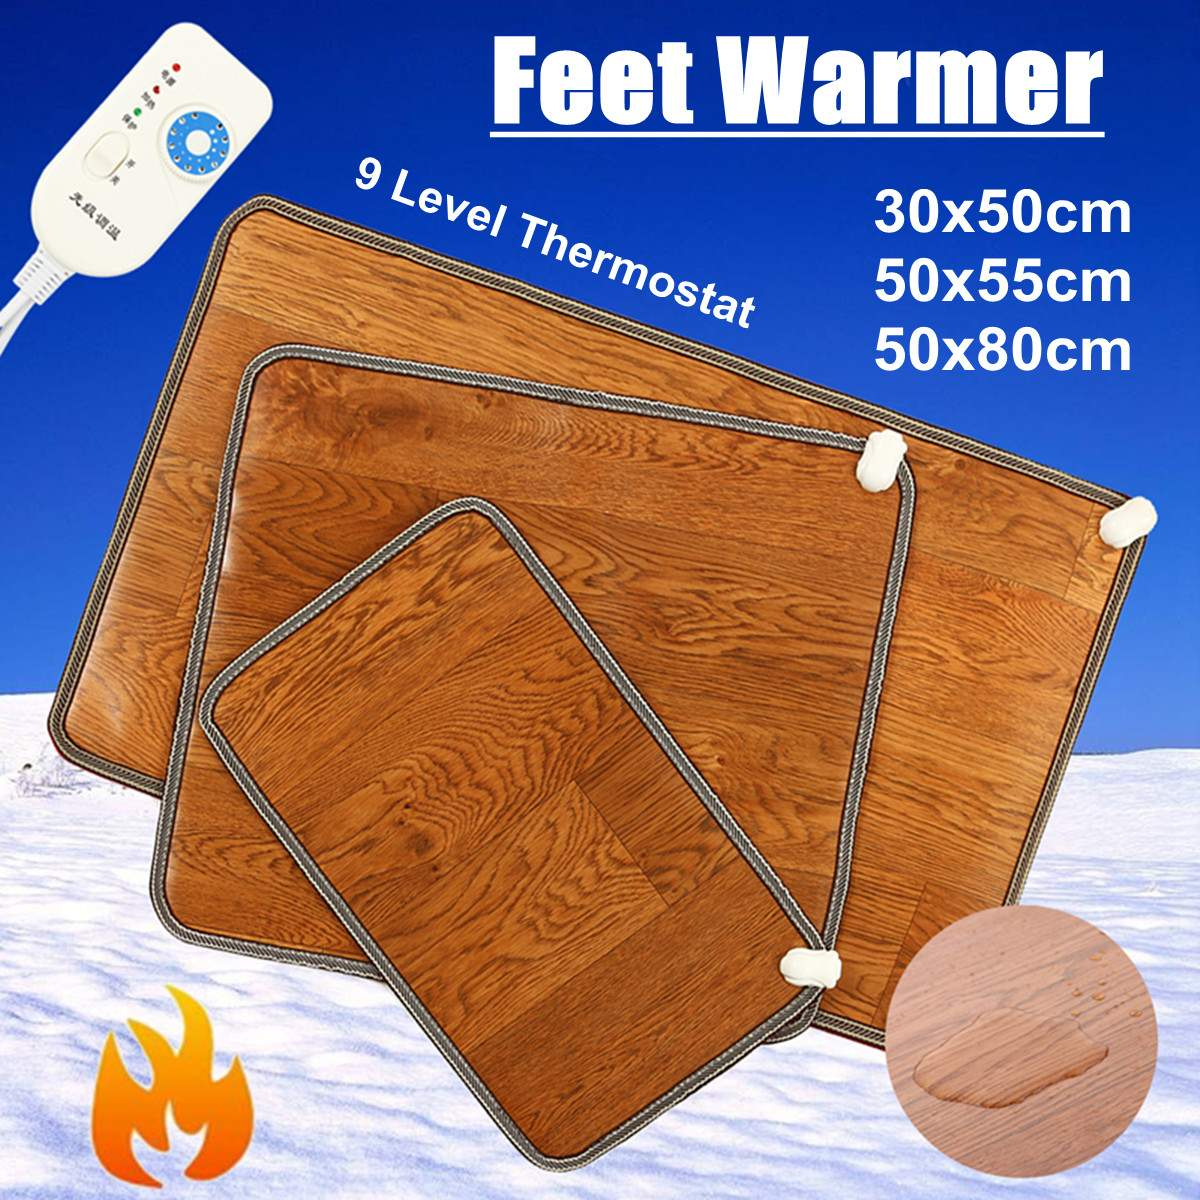 Winter 3 Sizes Leather Heating Foot Mat Warmer Electric Heating Pads Feet Leg Warmer Thermostat Home Office Warming Supplies